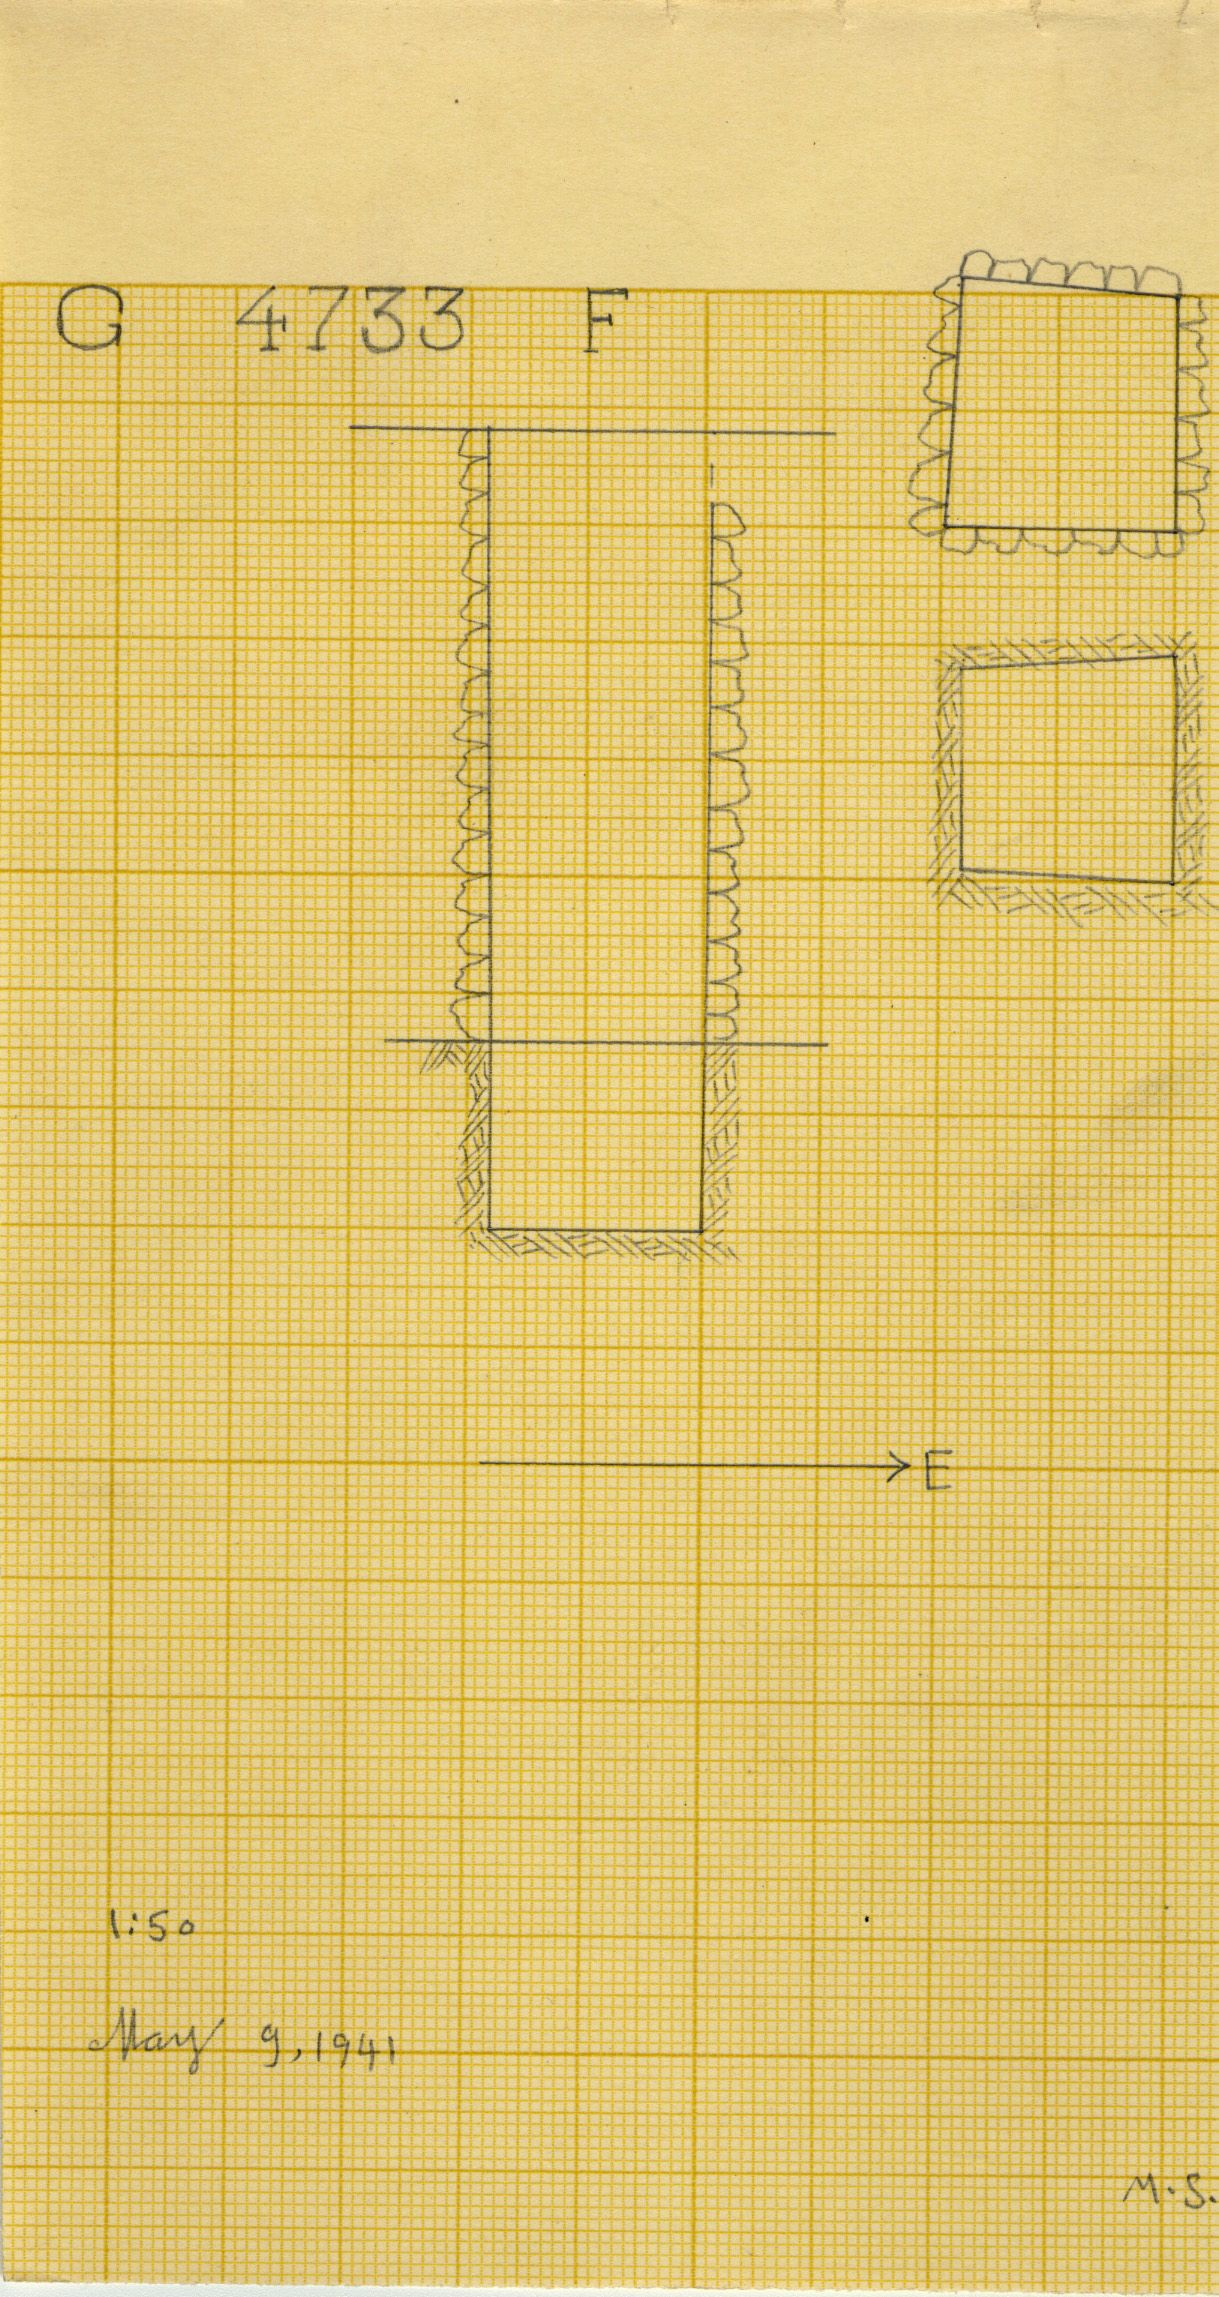 Maps and plans: G 4733, Shaft F